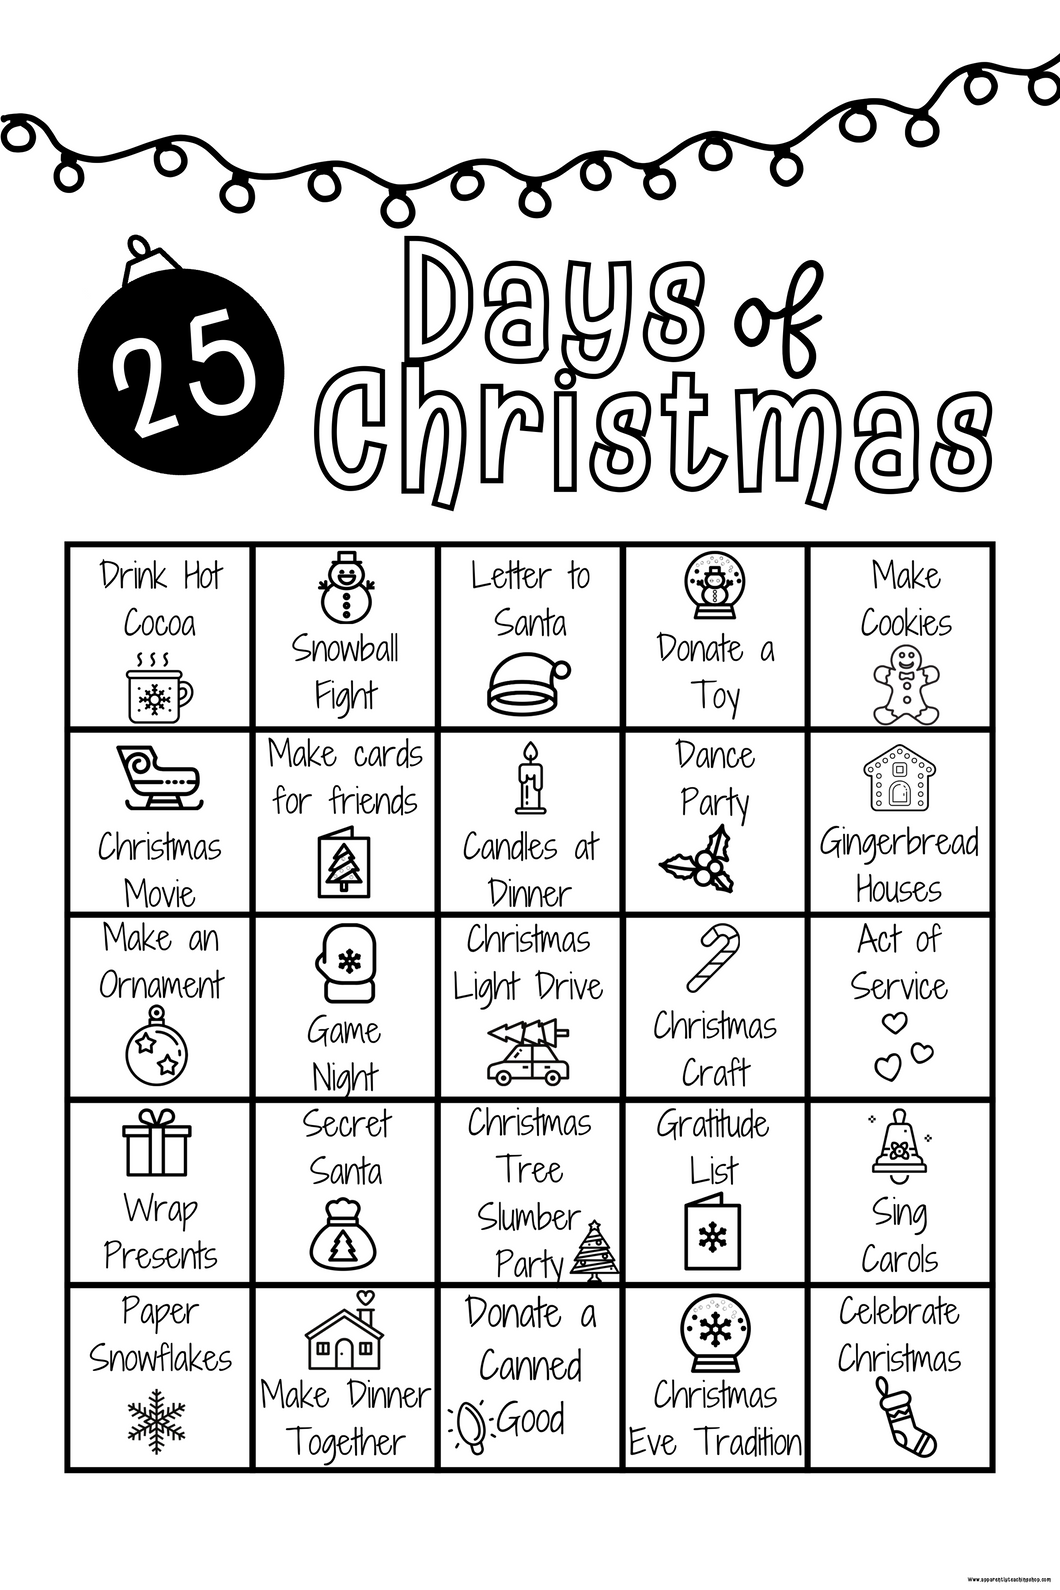 25 Days of Christmas Advent